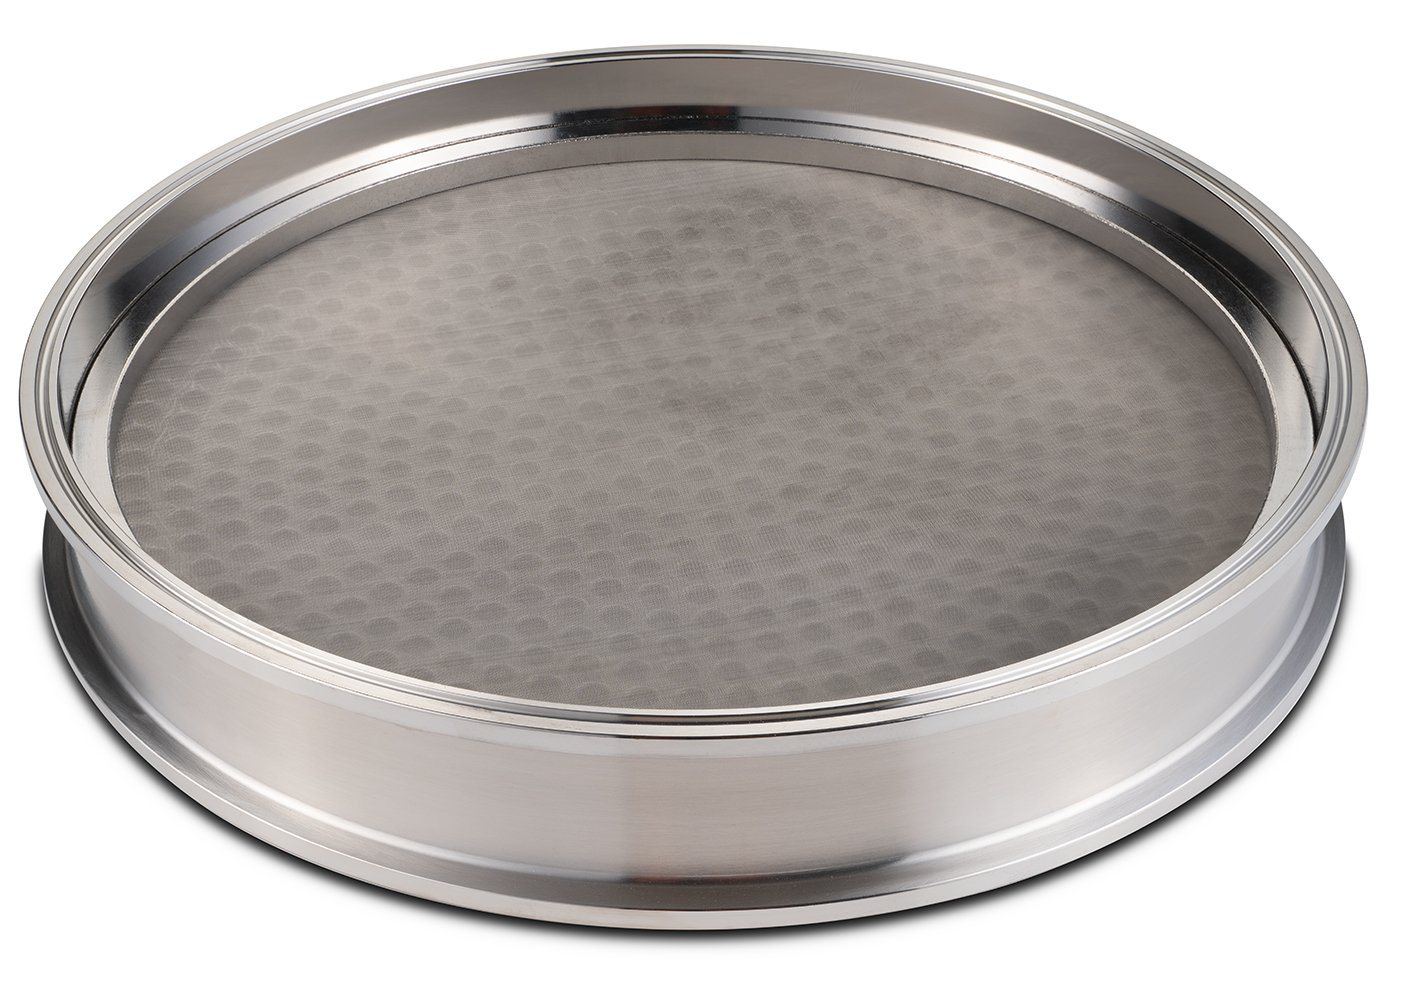 Tri-Clamp Filter Plate Shop All Categories BVV 12-inch